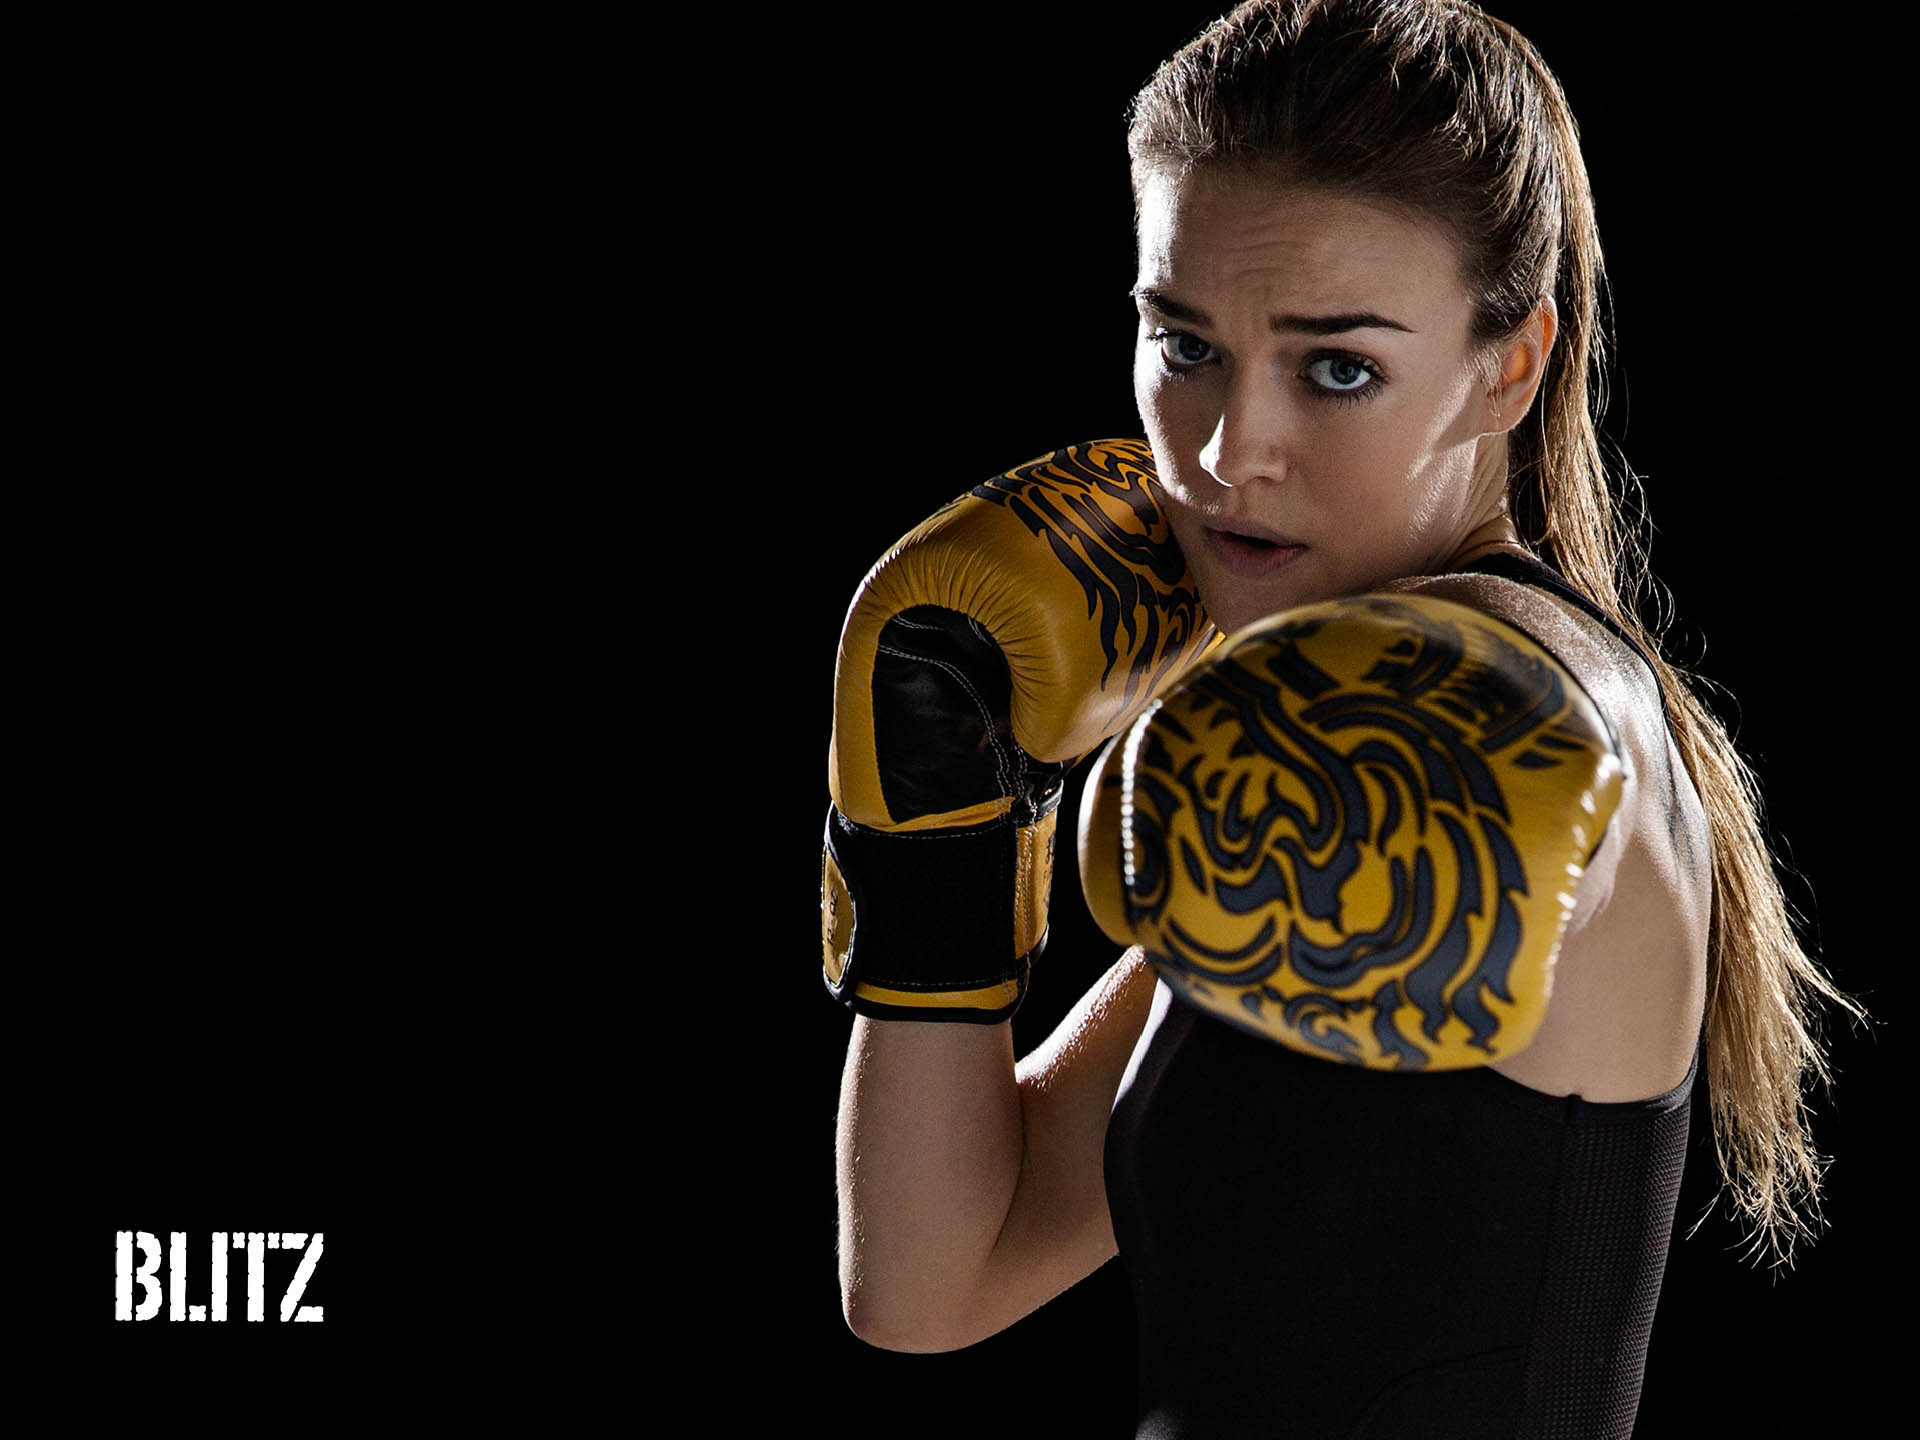 Gym 3d Wallpaper Download The Latest Martial Arts Wallpapers From Blitz